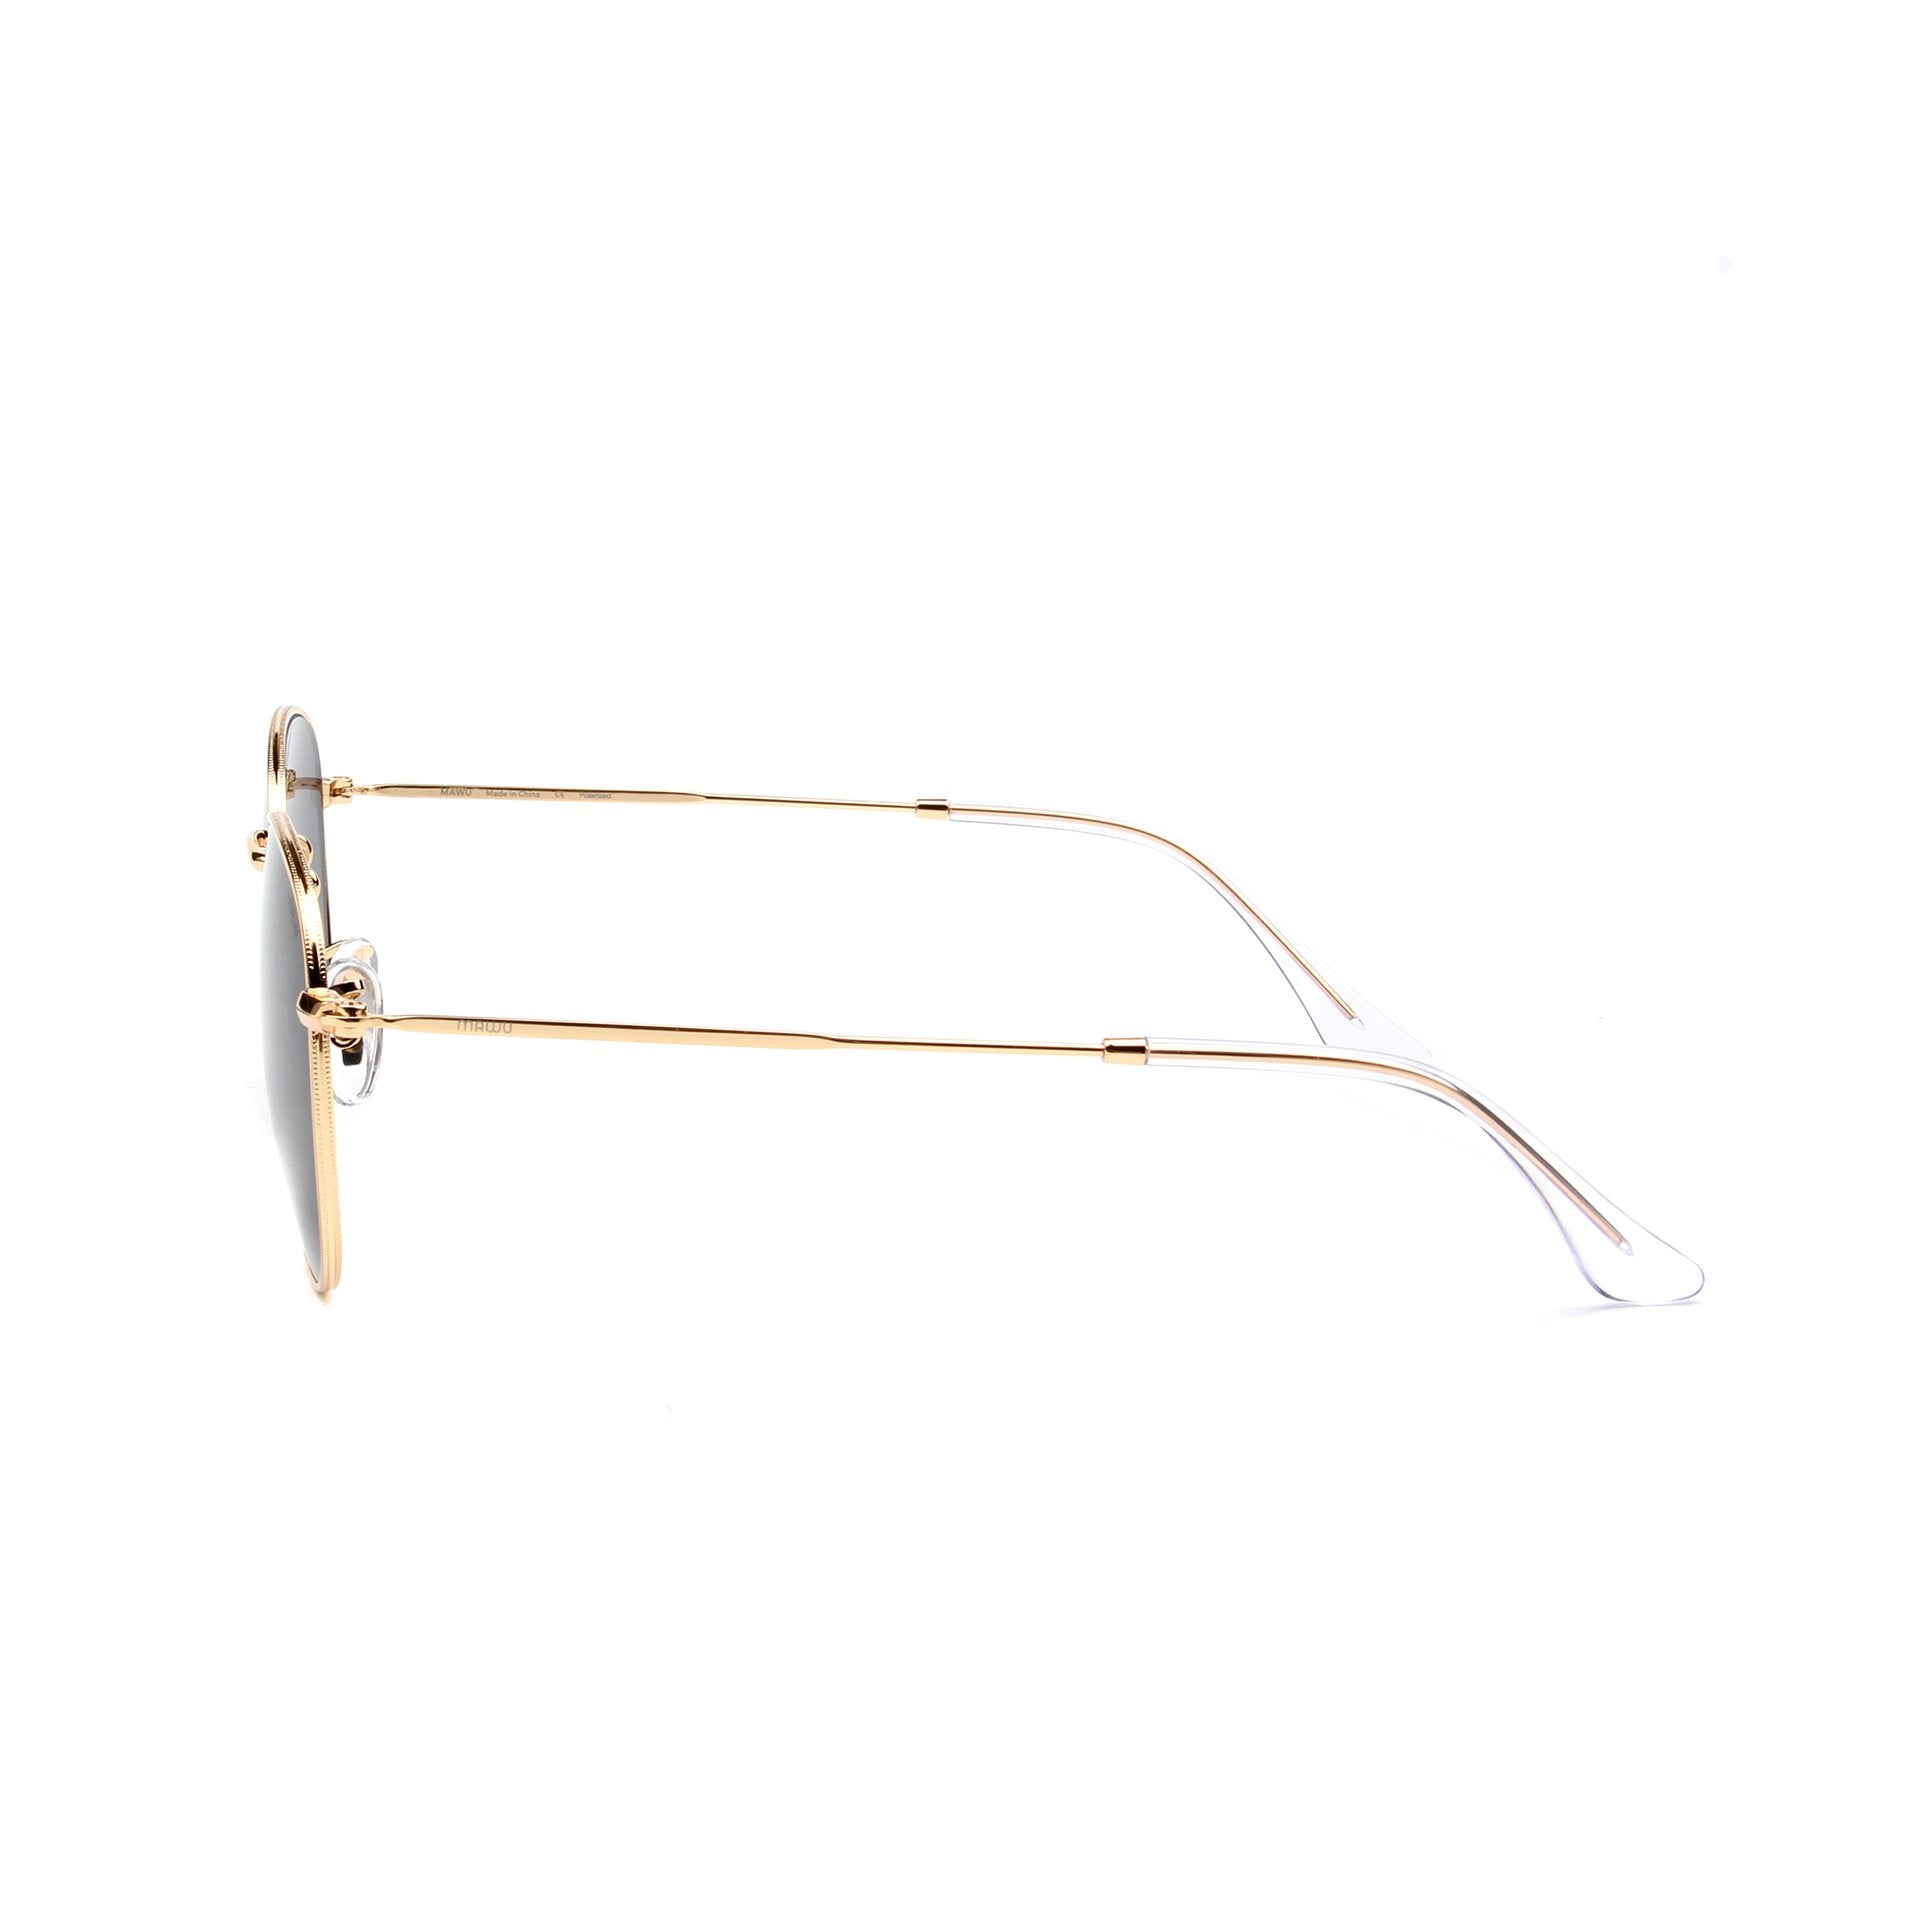 Monte Carlo Gold - Side View - Grey lens - Mawu sunglasses